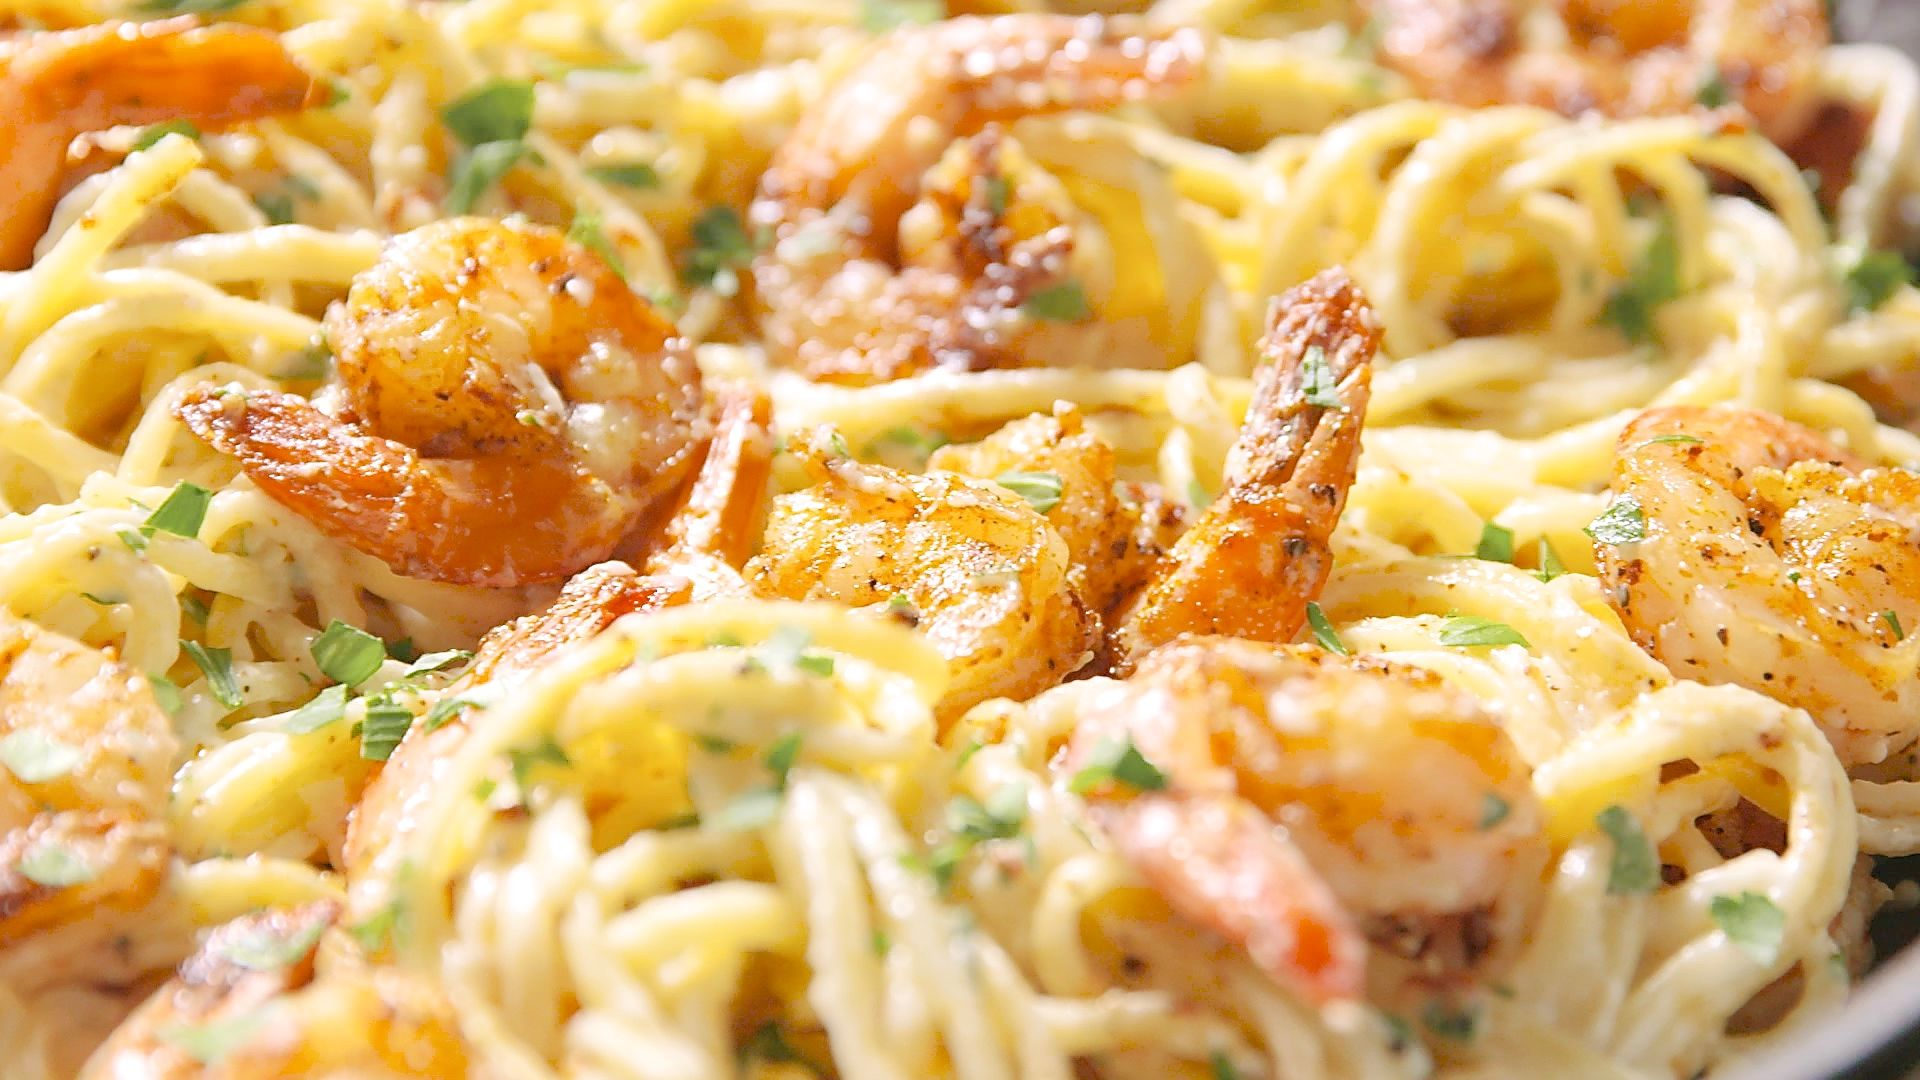 Best Cajun Shrimp Pasta Recipe How To Make Cajun Shrimp Pasta